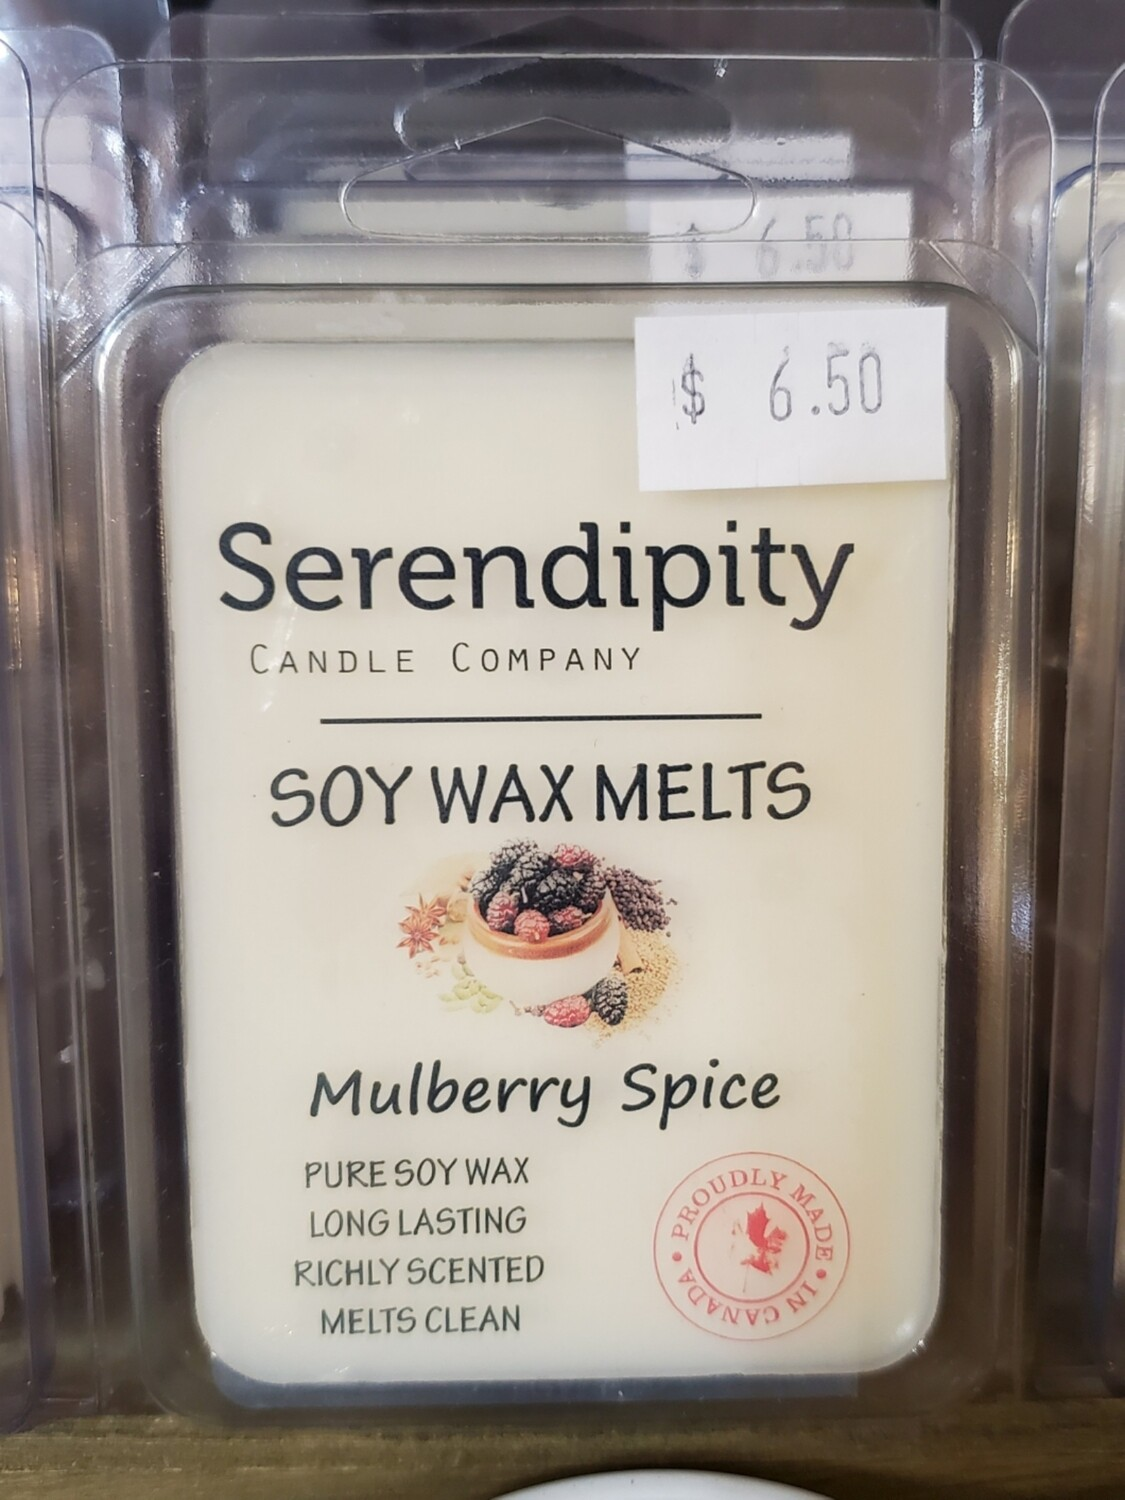 Serendipity Wax Melts | Mulberry Spice